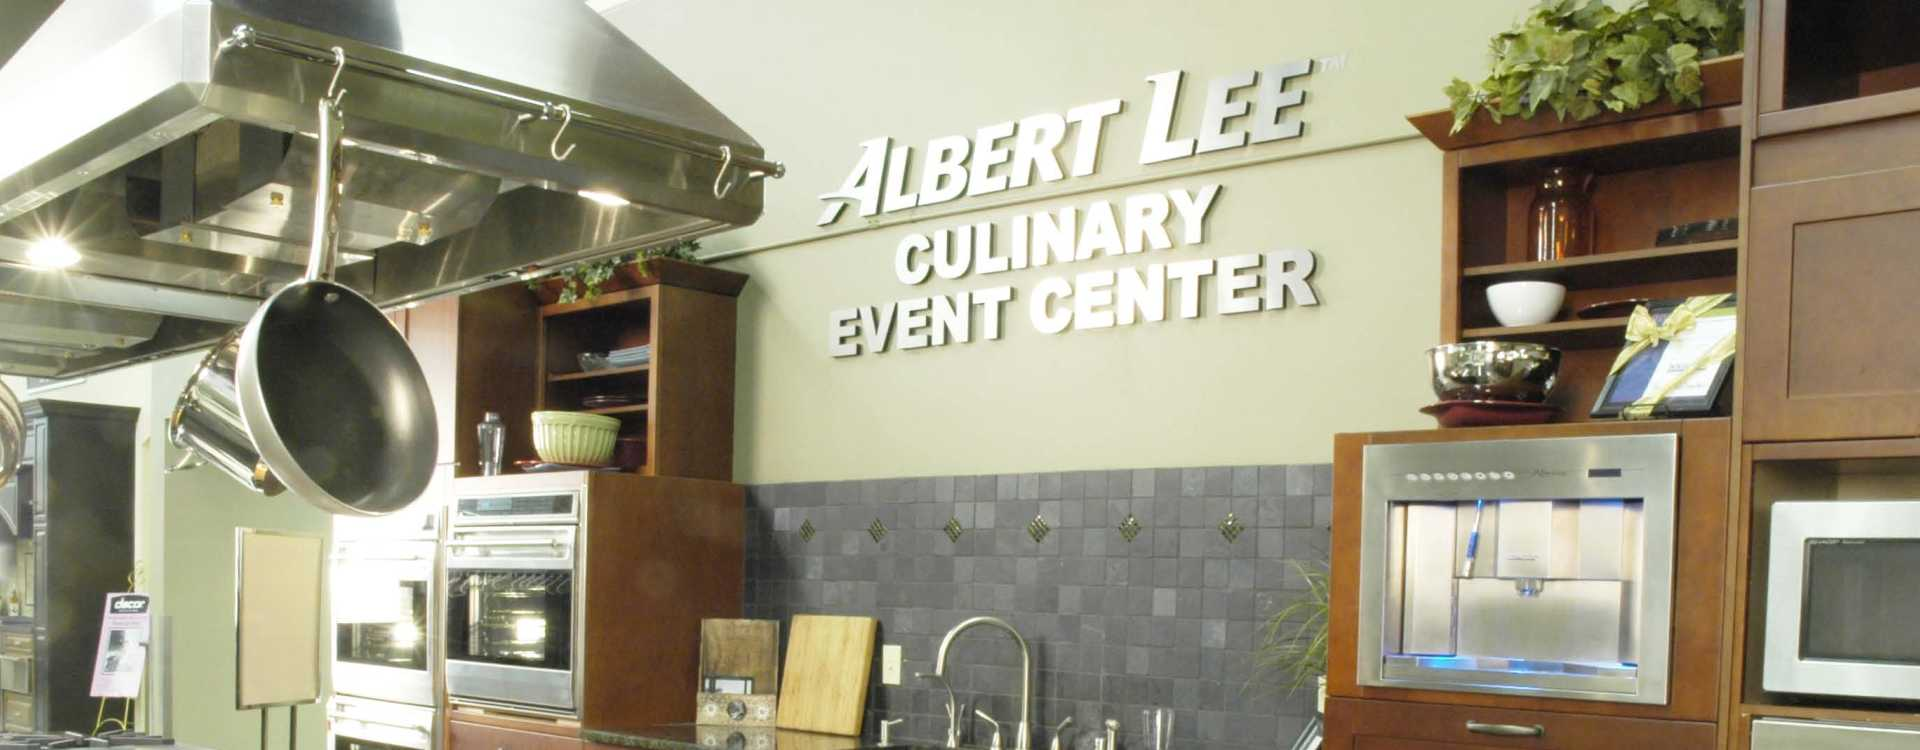 meeting-facility-Albert_Lee_Culinary_Event_Center_Meeting_Facility.jpg